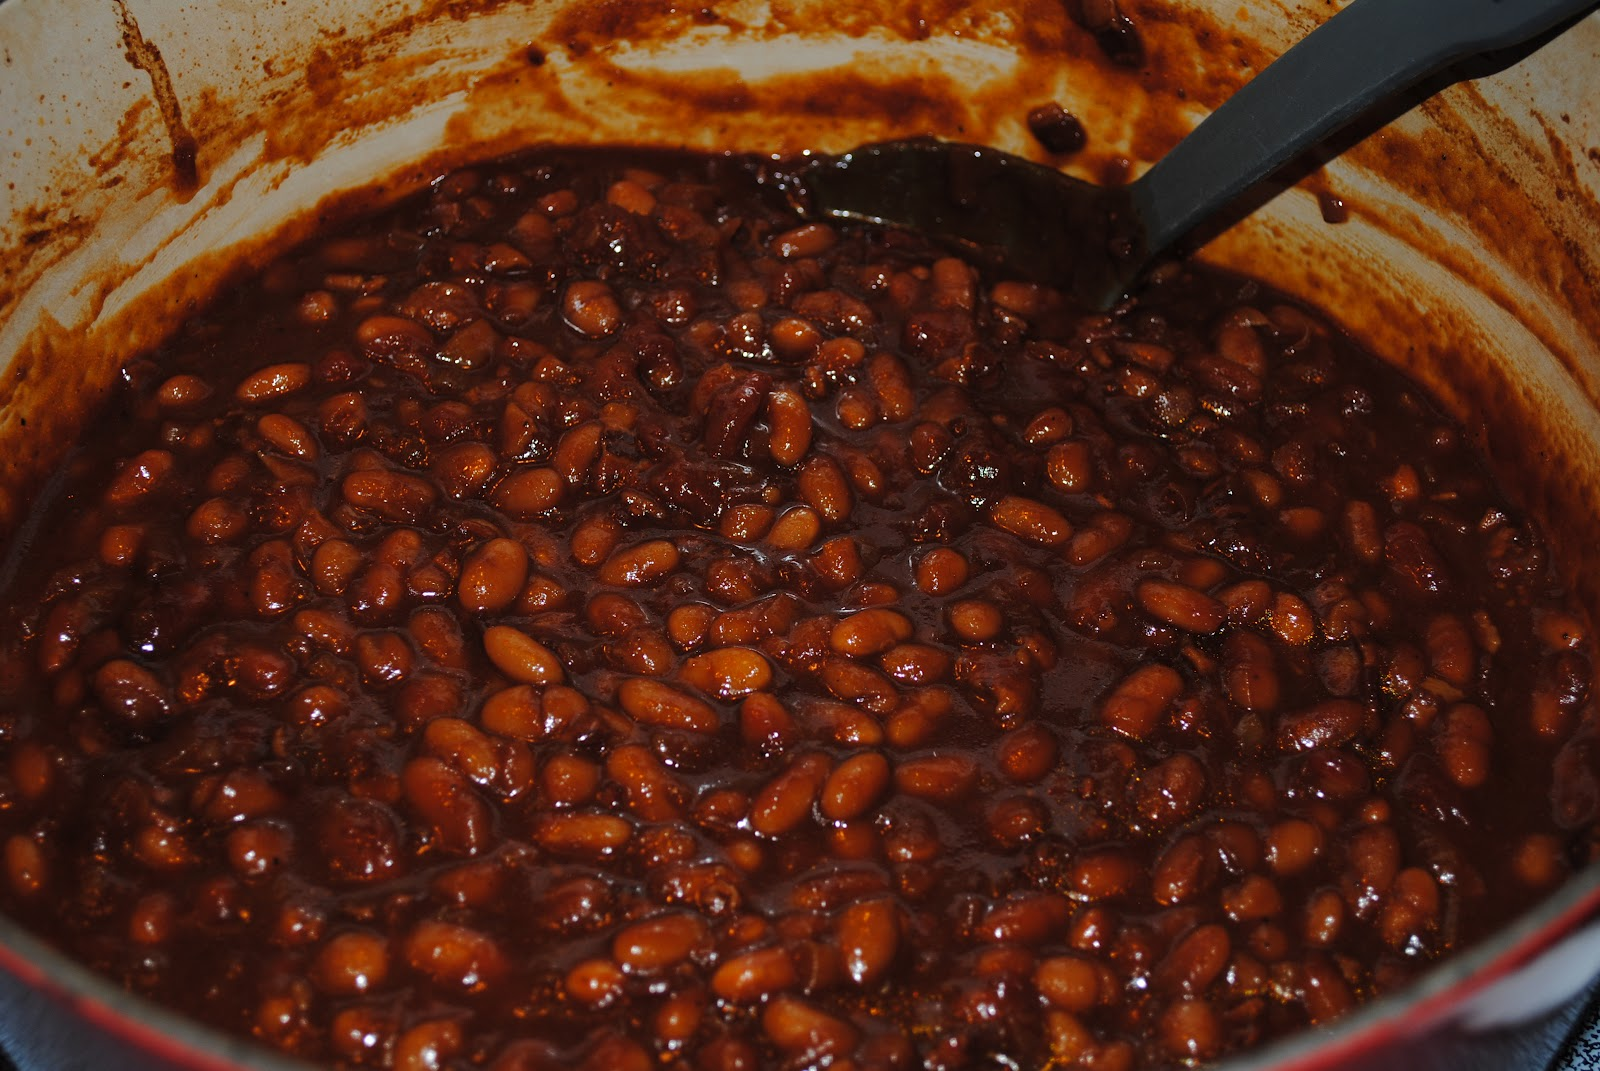 and then I put an egg on it.: Barbecued Baked Beans